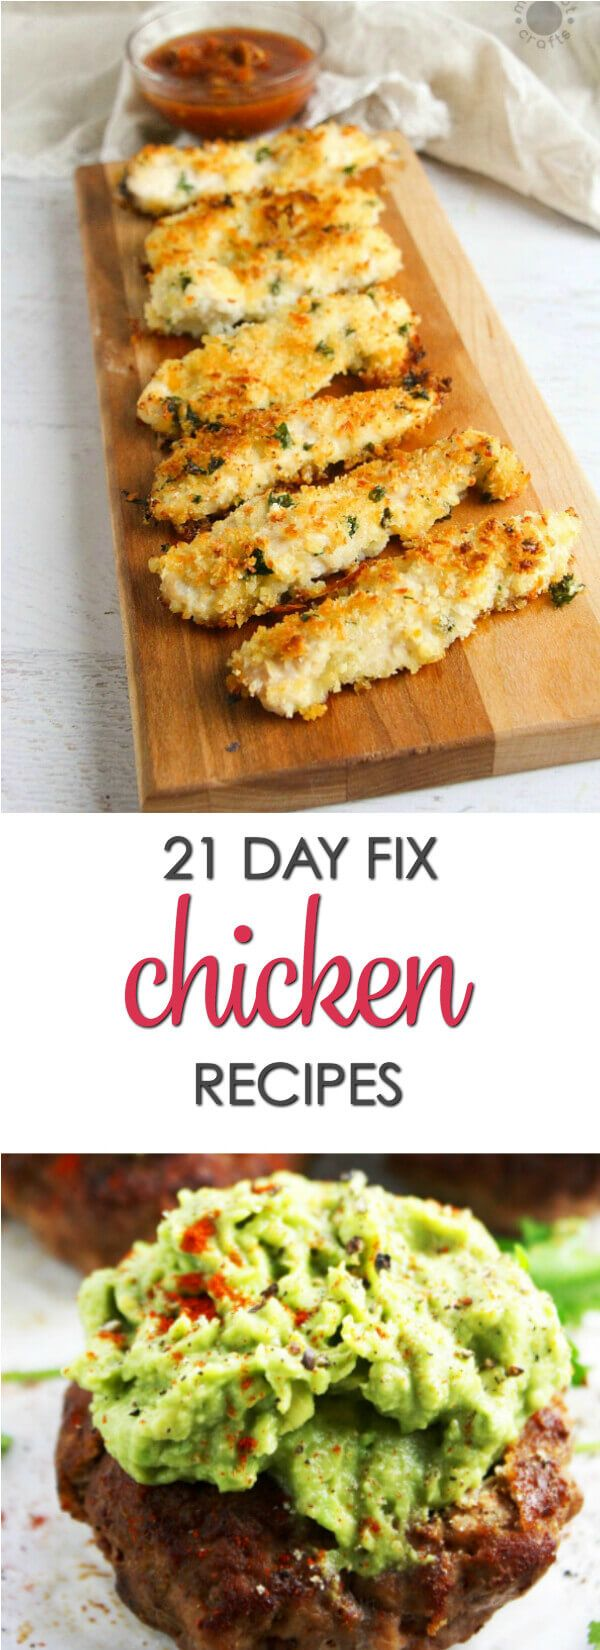 If you're following the 21 Day Fix program it's time to get inspired for dinner. Here are thirty 21 Day Fix Chicken Recipes that are full of flavor and easy to make.   #Itisakeeper #recipes #21DayFix via @itsakeeperblog